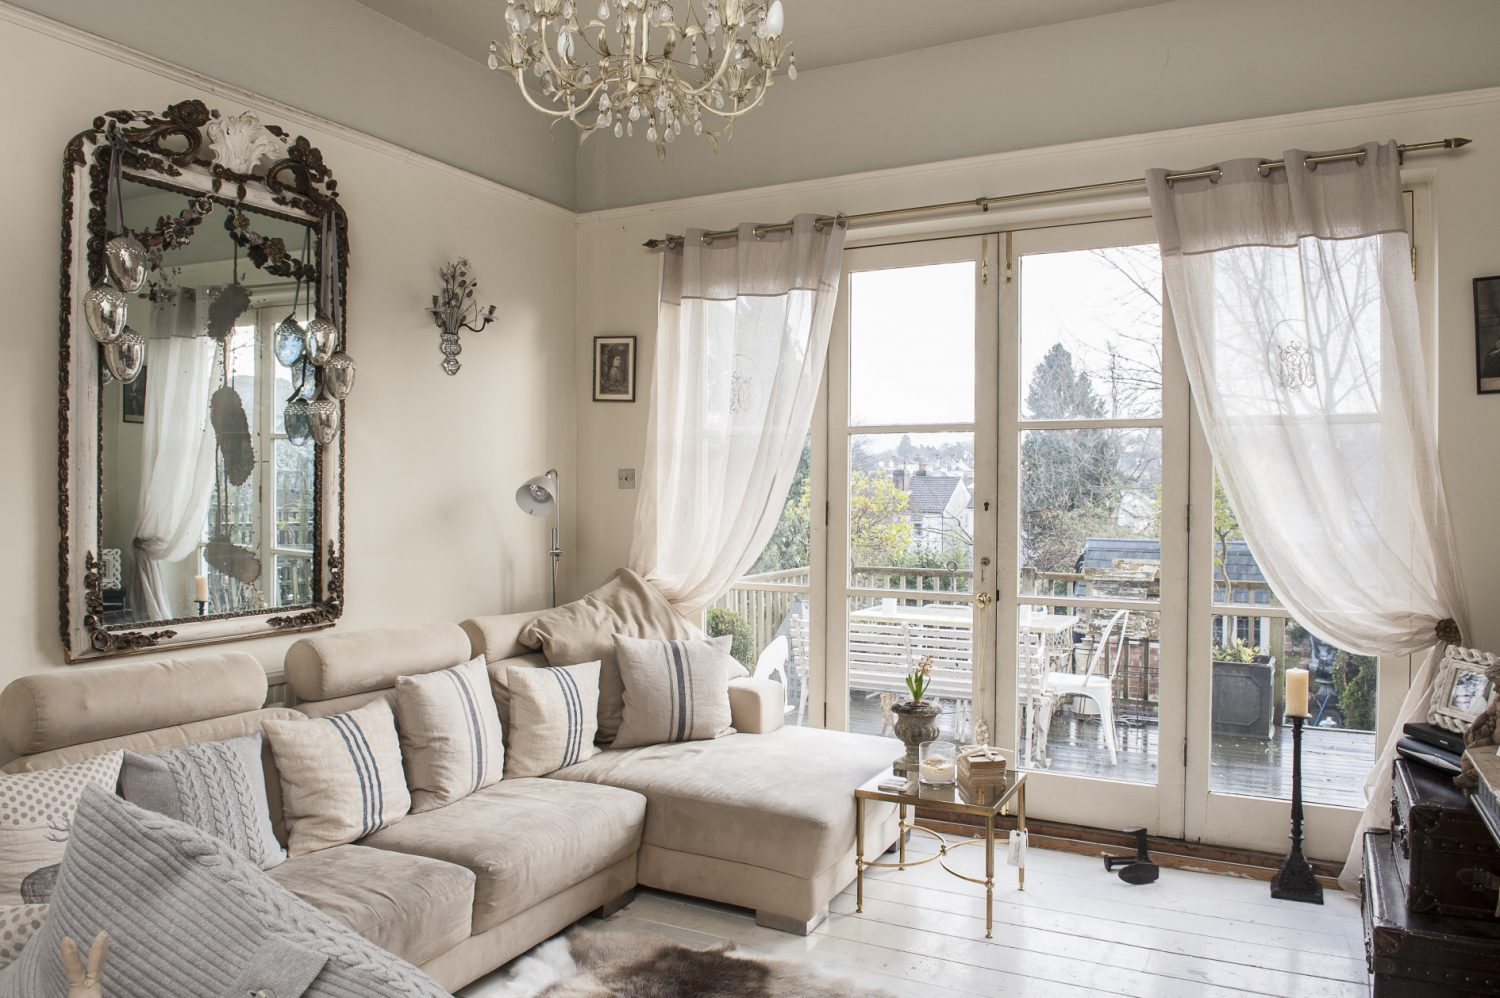 In the more casual area of the drawing room a big cream Danish horseshoe sofa faces the television on the wall opposite and light pours in from a wall of glass doors which open out onto a large timber balcony overlooking the garden